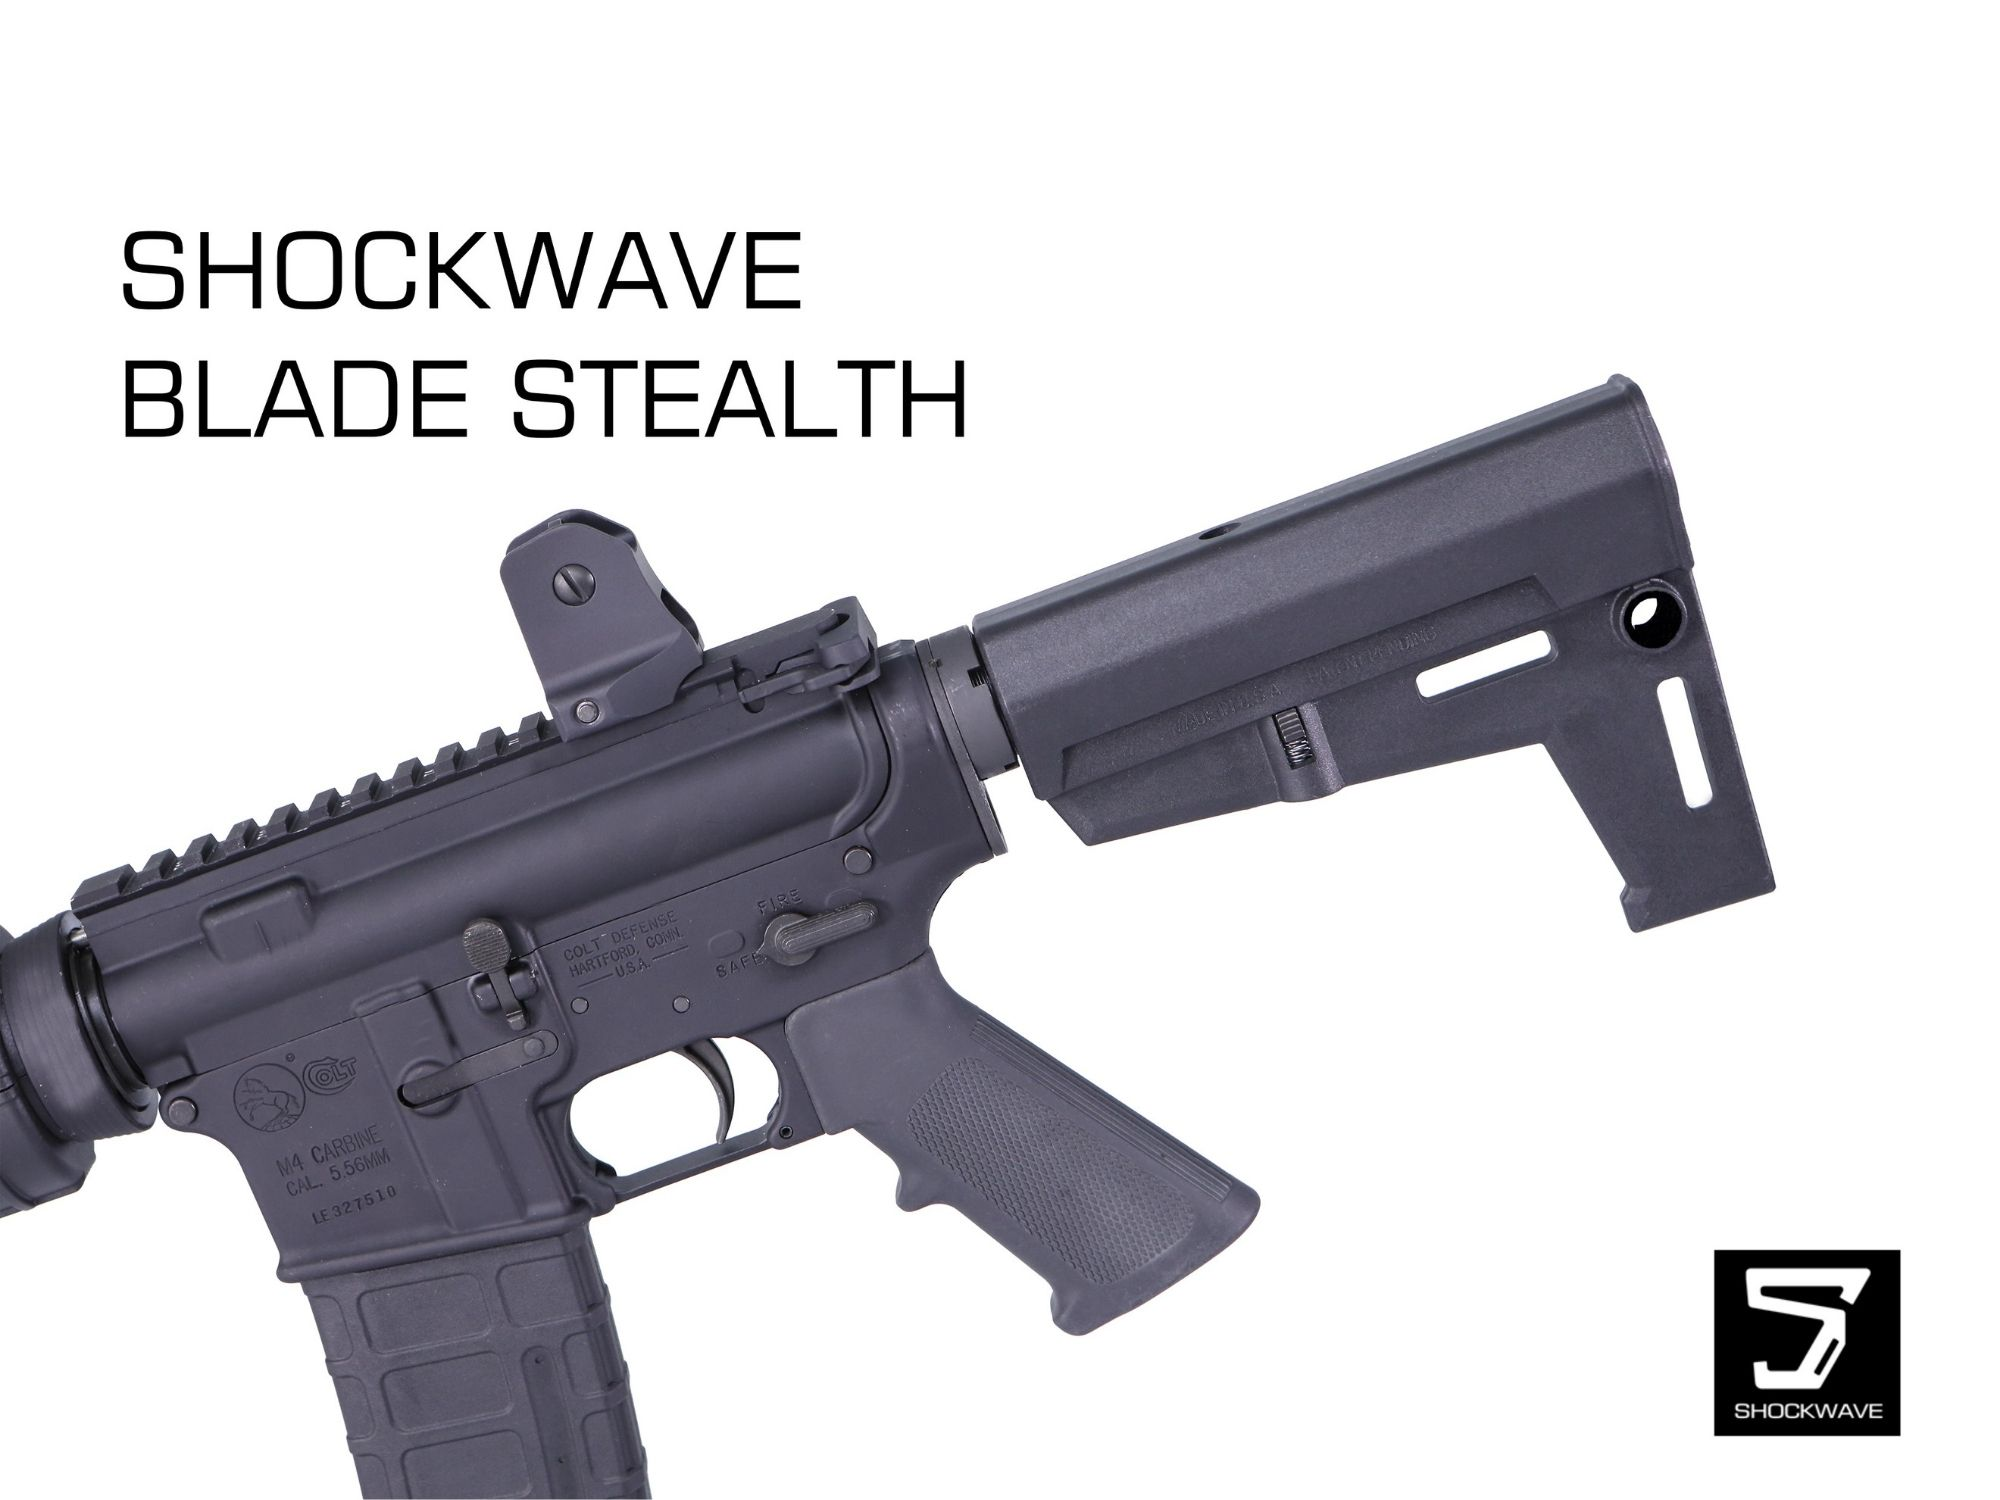 shockwave blade stealth pistol stabilizer